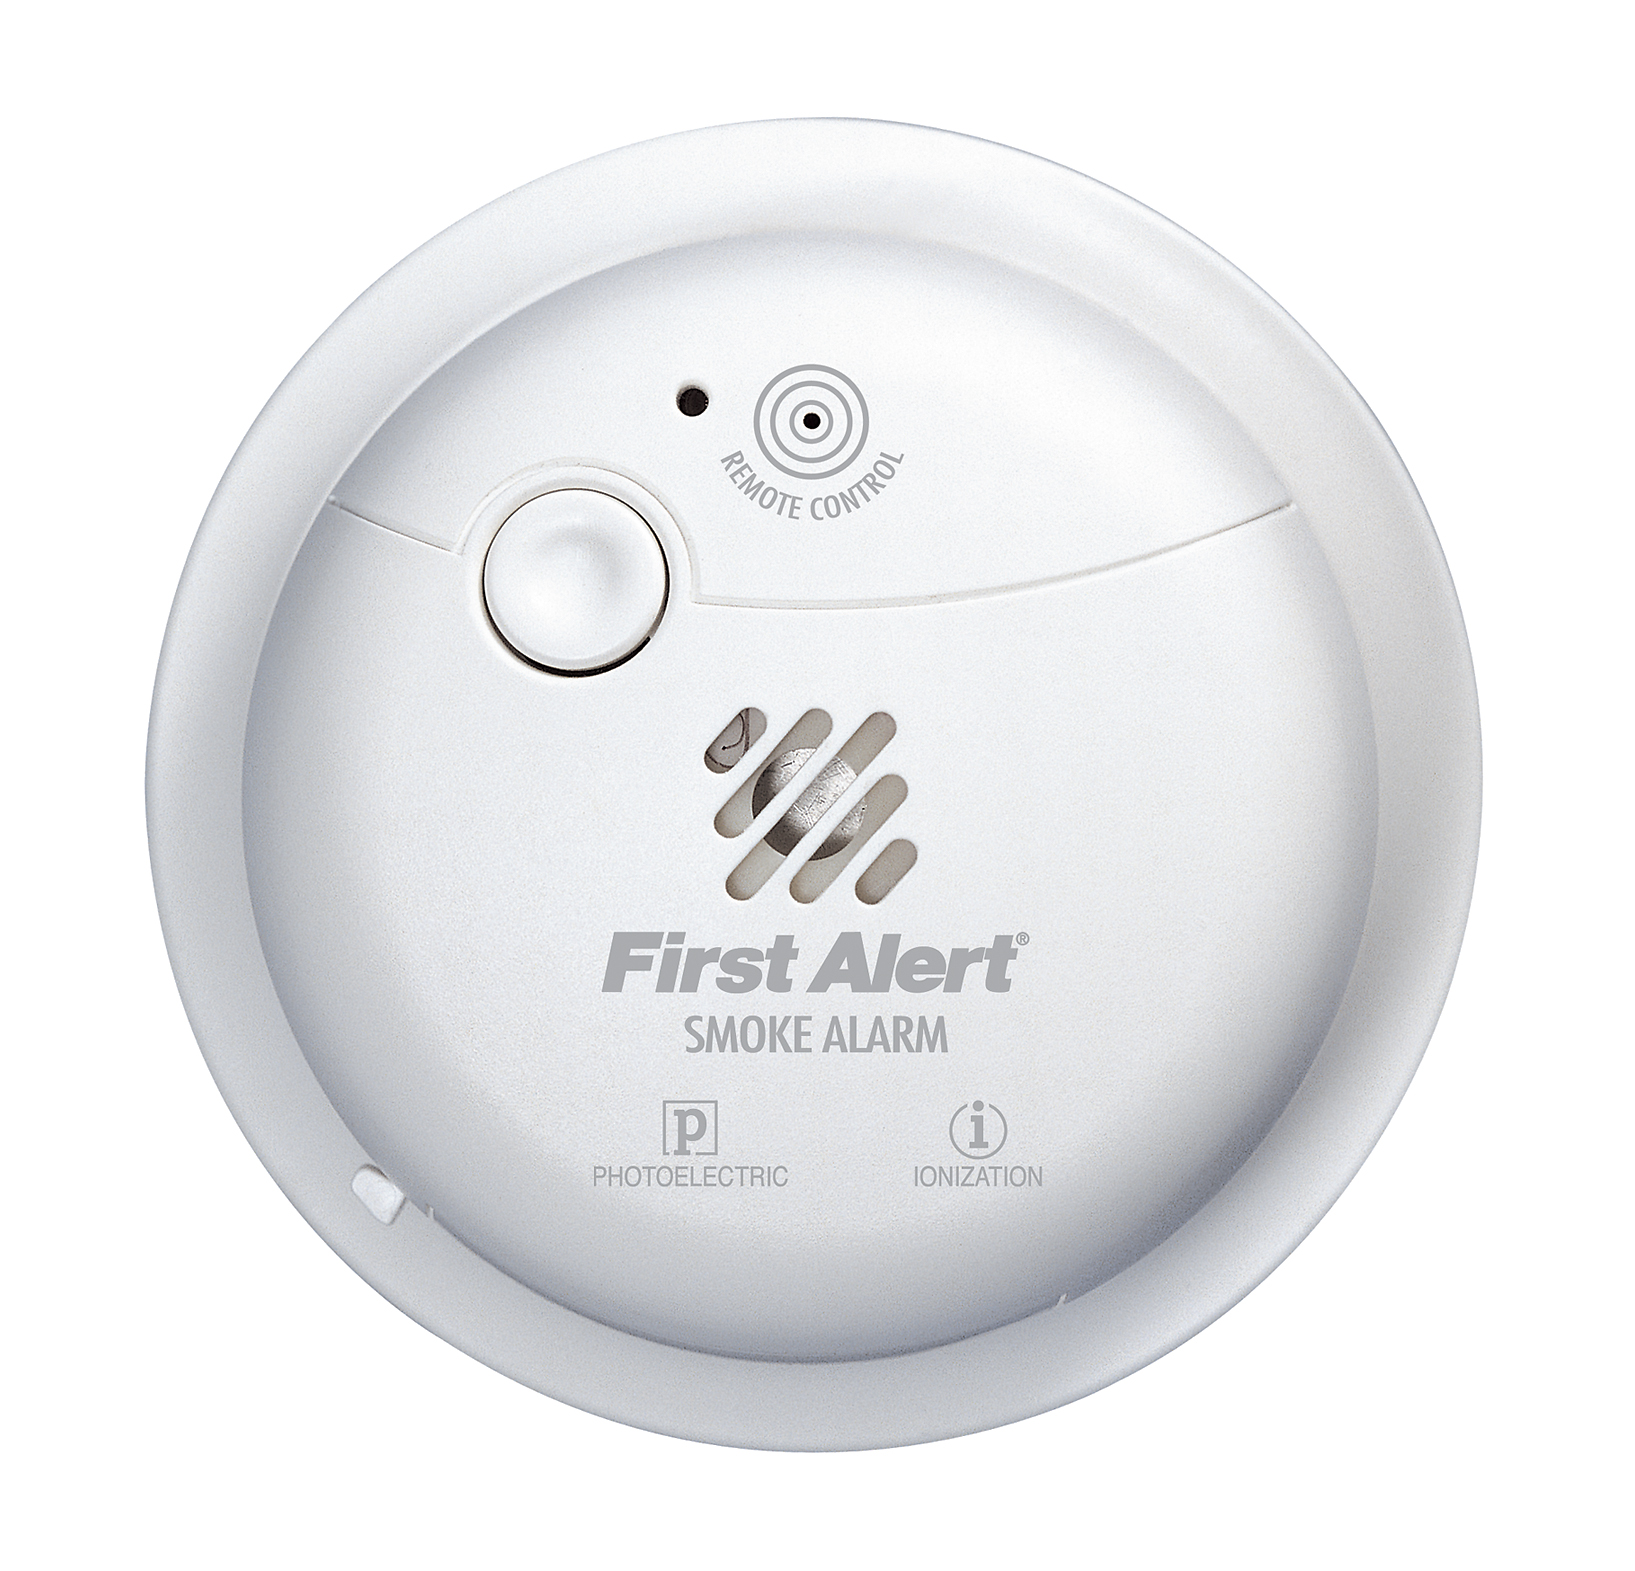 high res image - First Alert Smoke Alarm